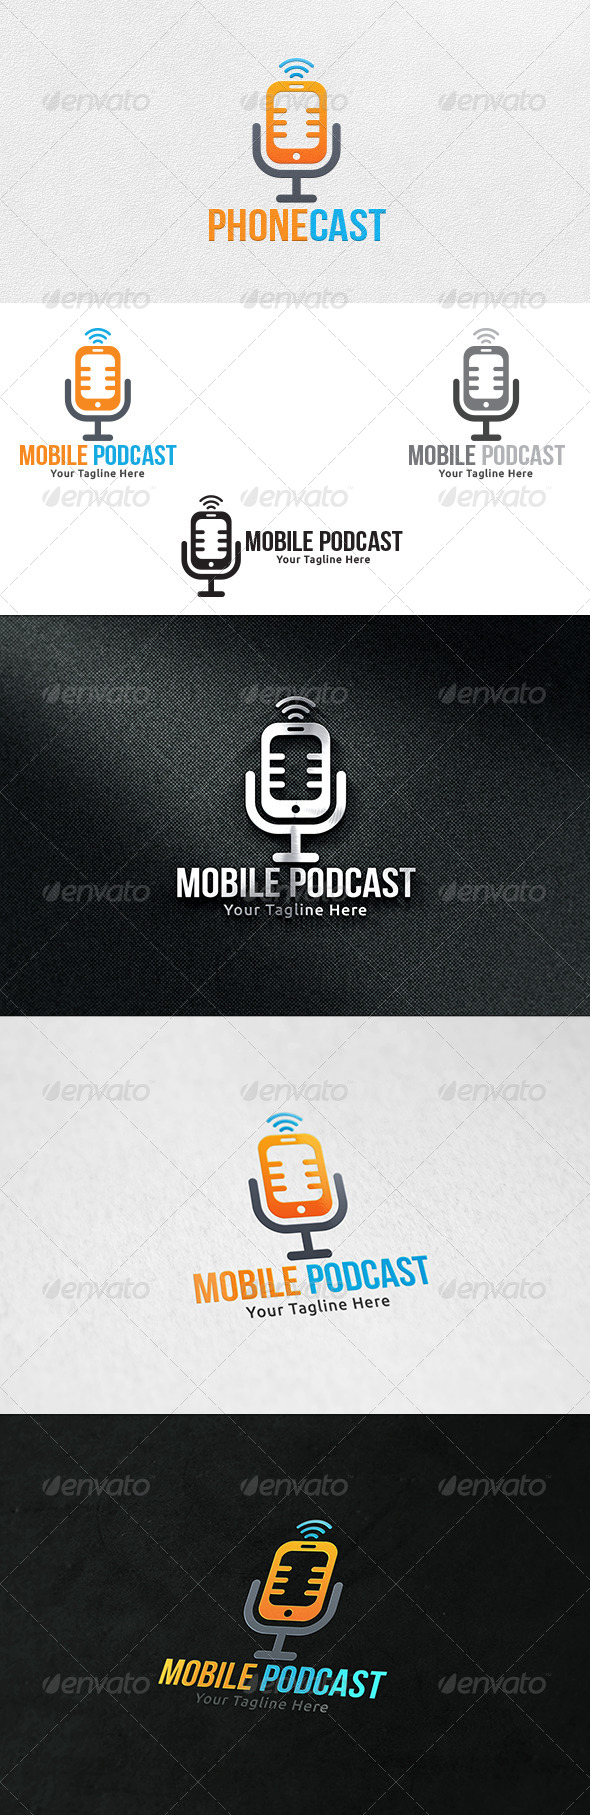 Mobile Podcast - Logo Template